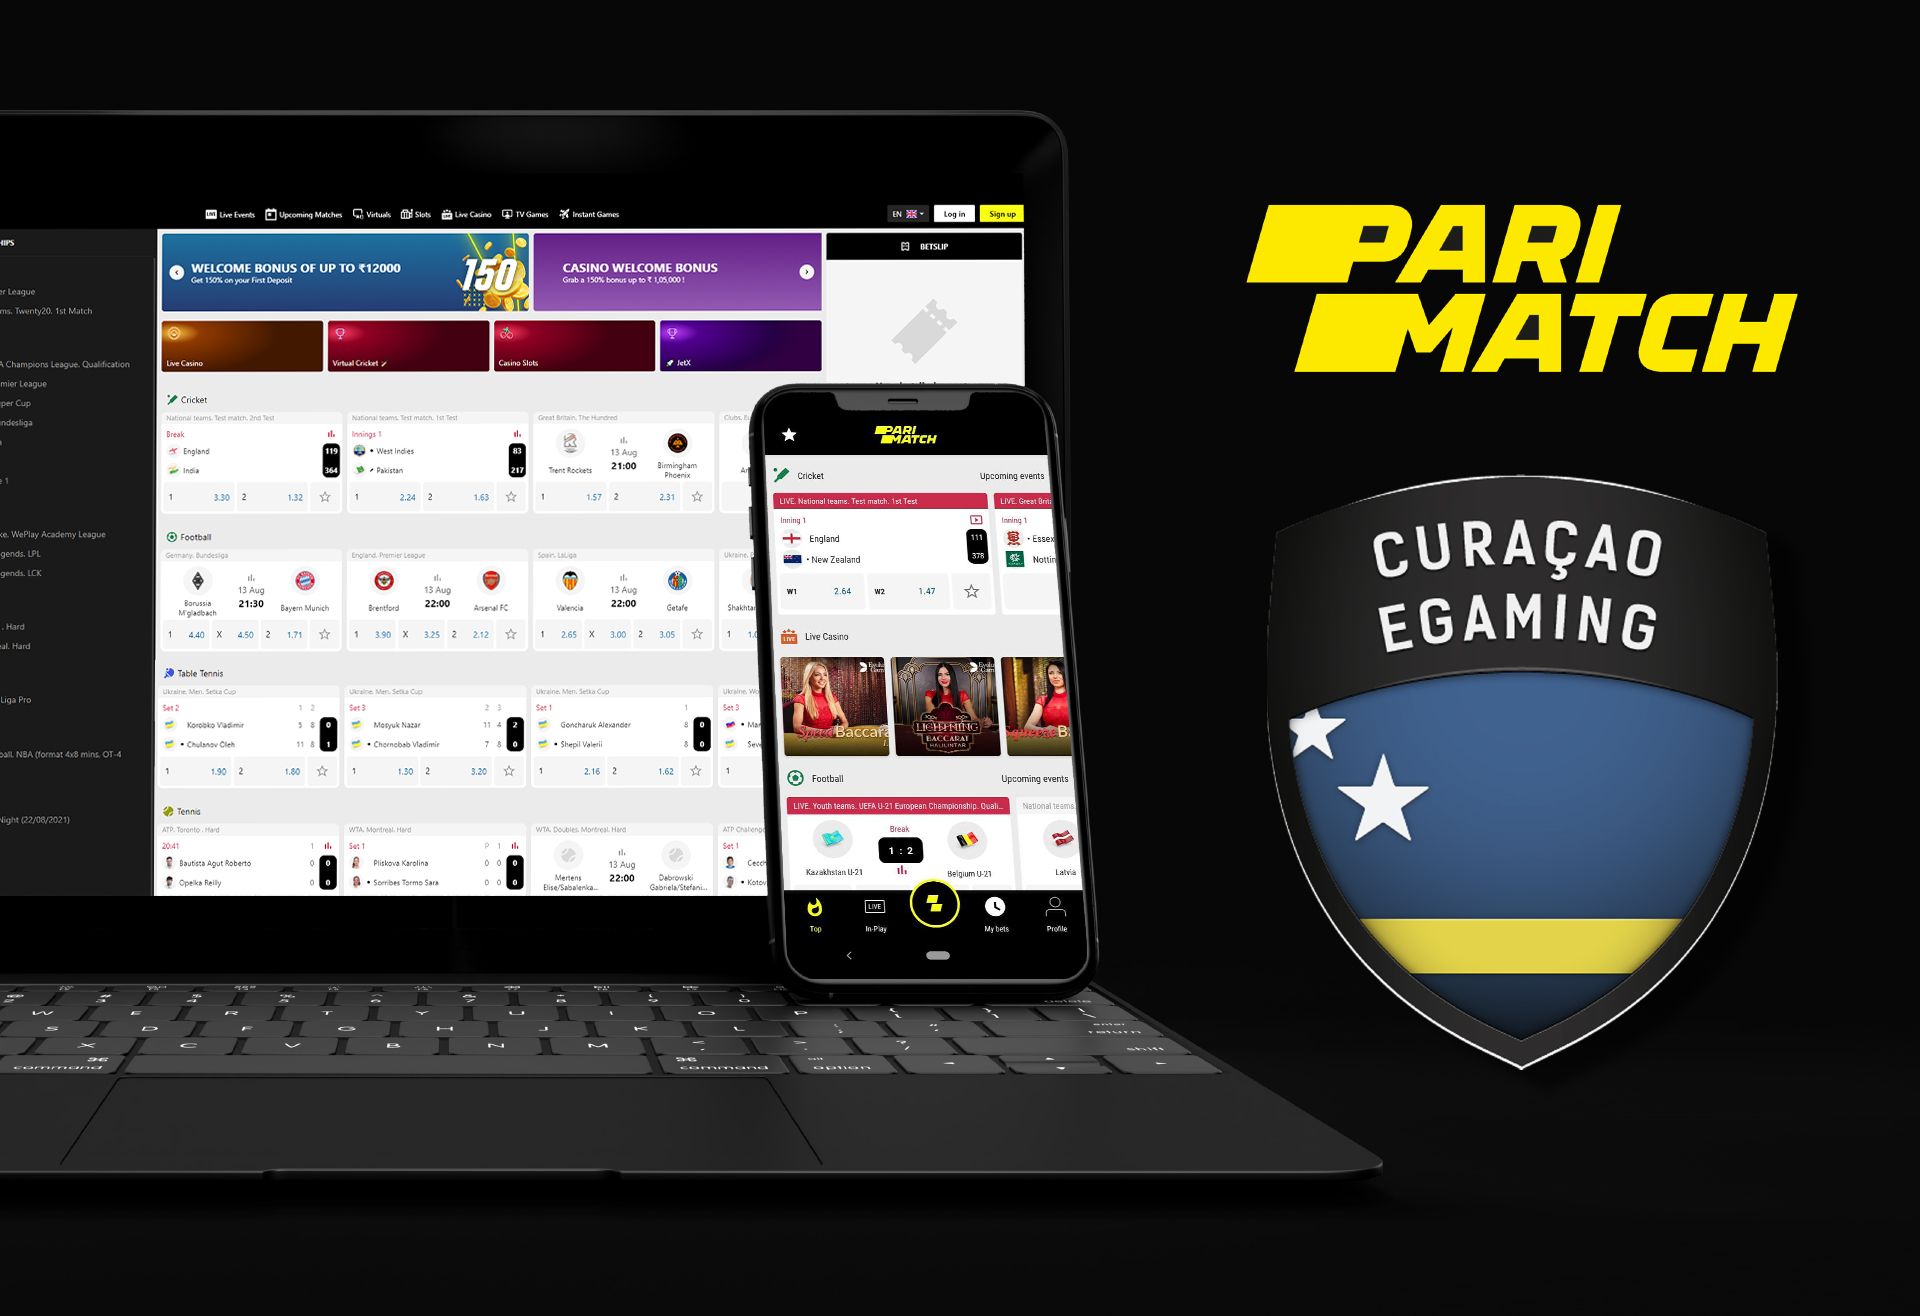 Parimatch works legally under the Curacao license, so it is safe for users to place bets here.